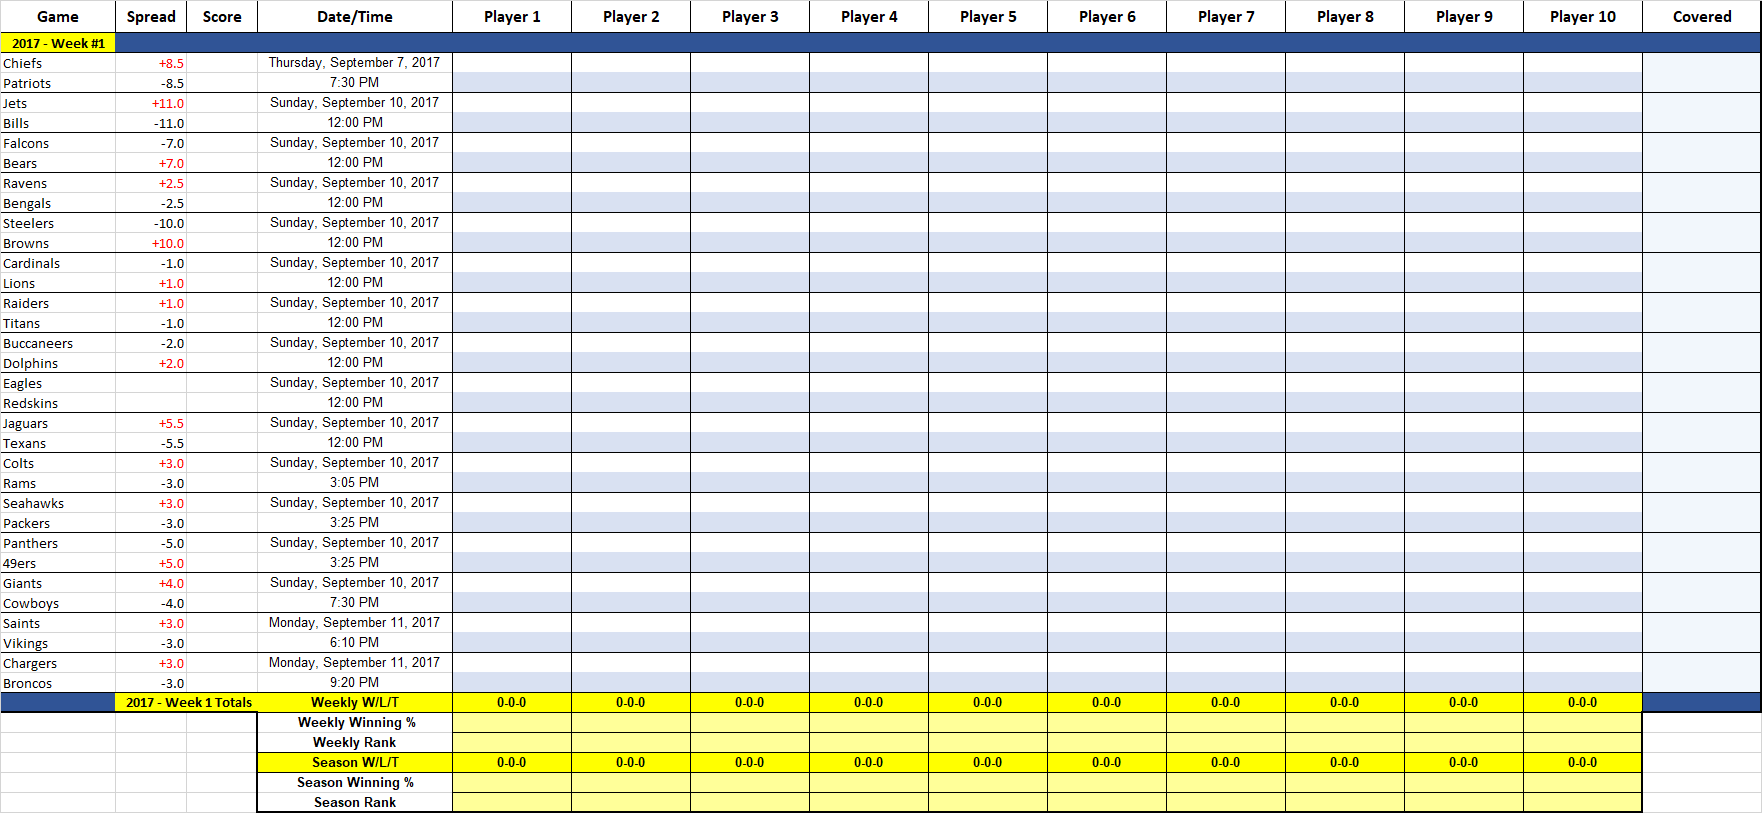 Template For 2017 Nfl Weekly Schedule Excel Spreadsheet With 2017 Nfl Weekly Schedule Excel Spreadsheet Template